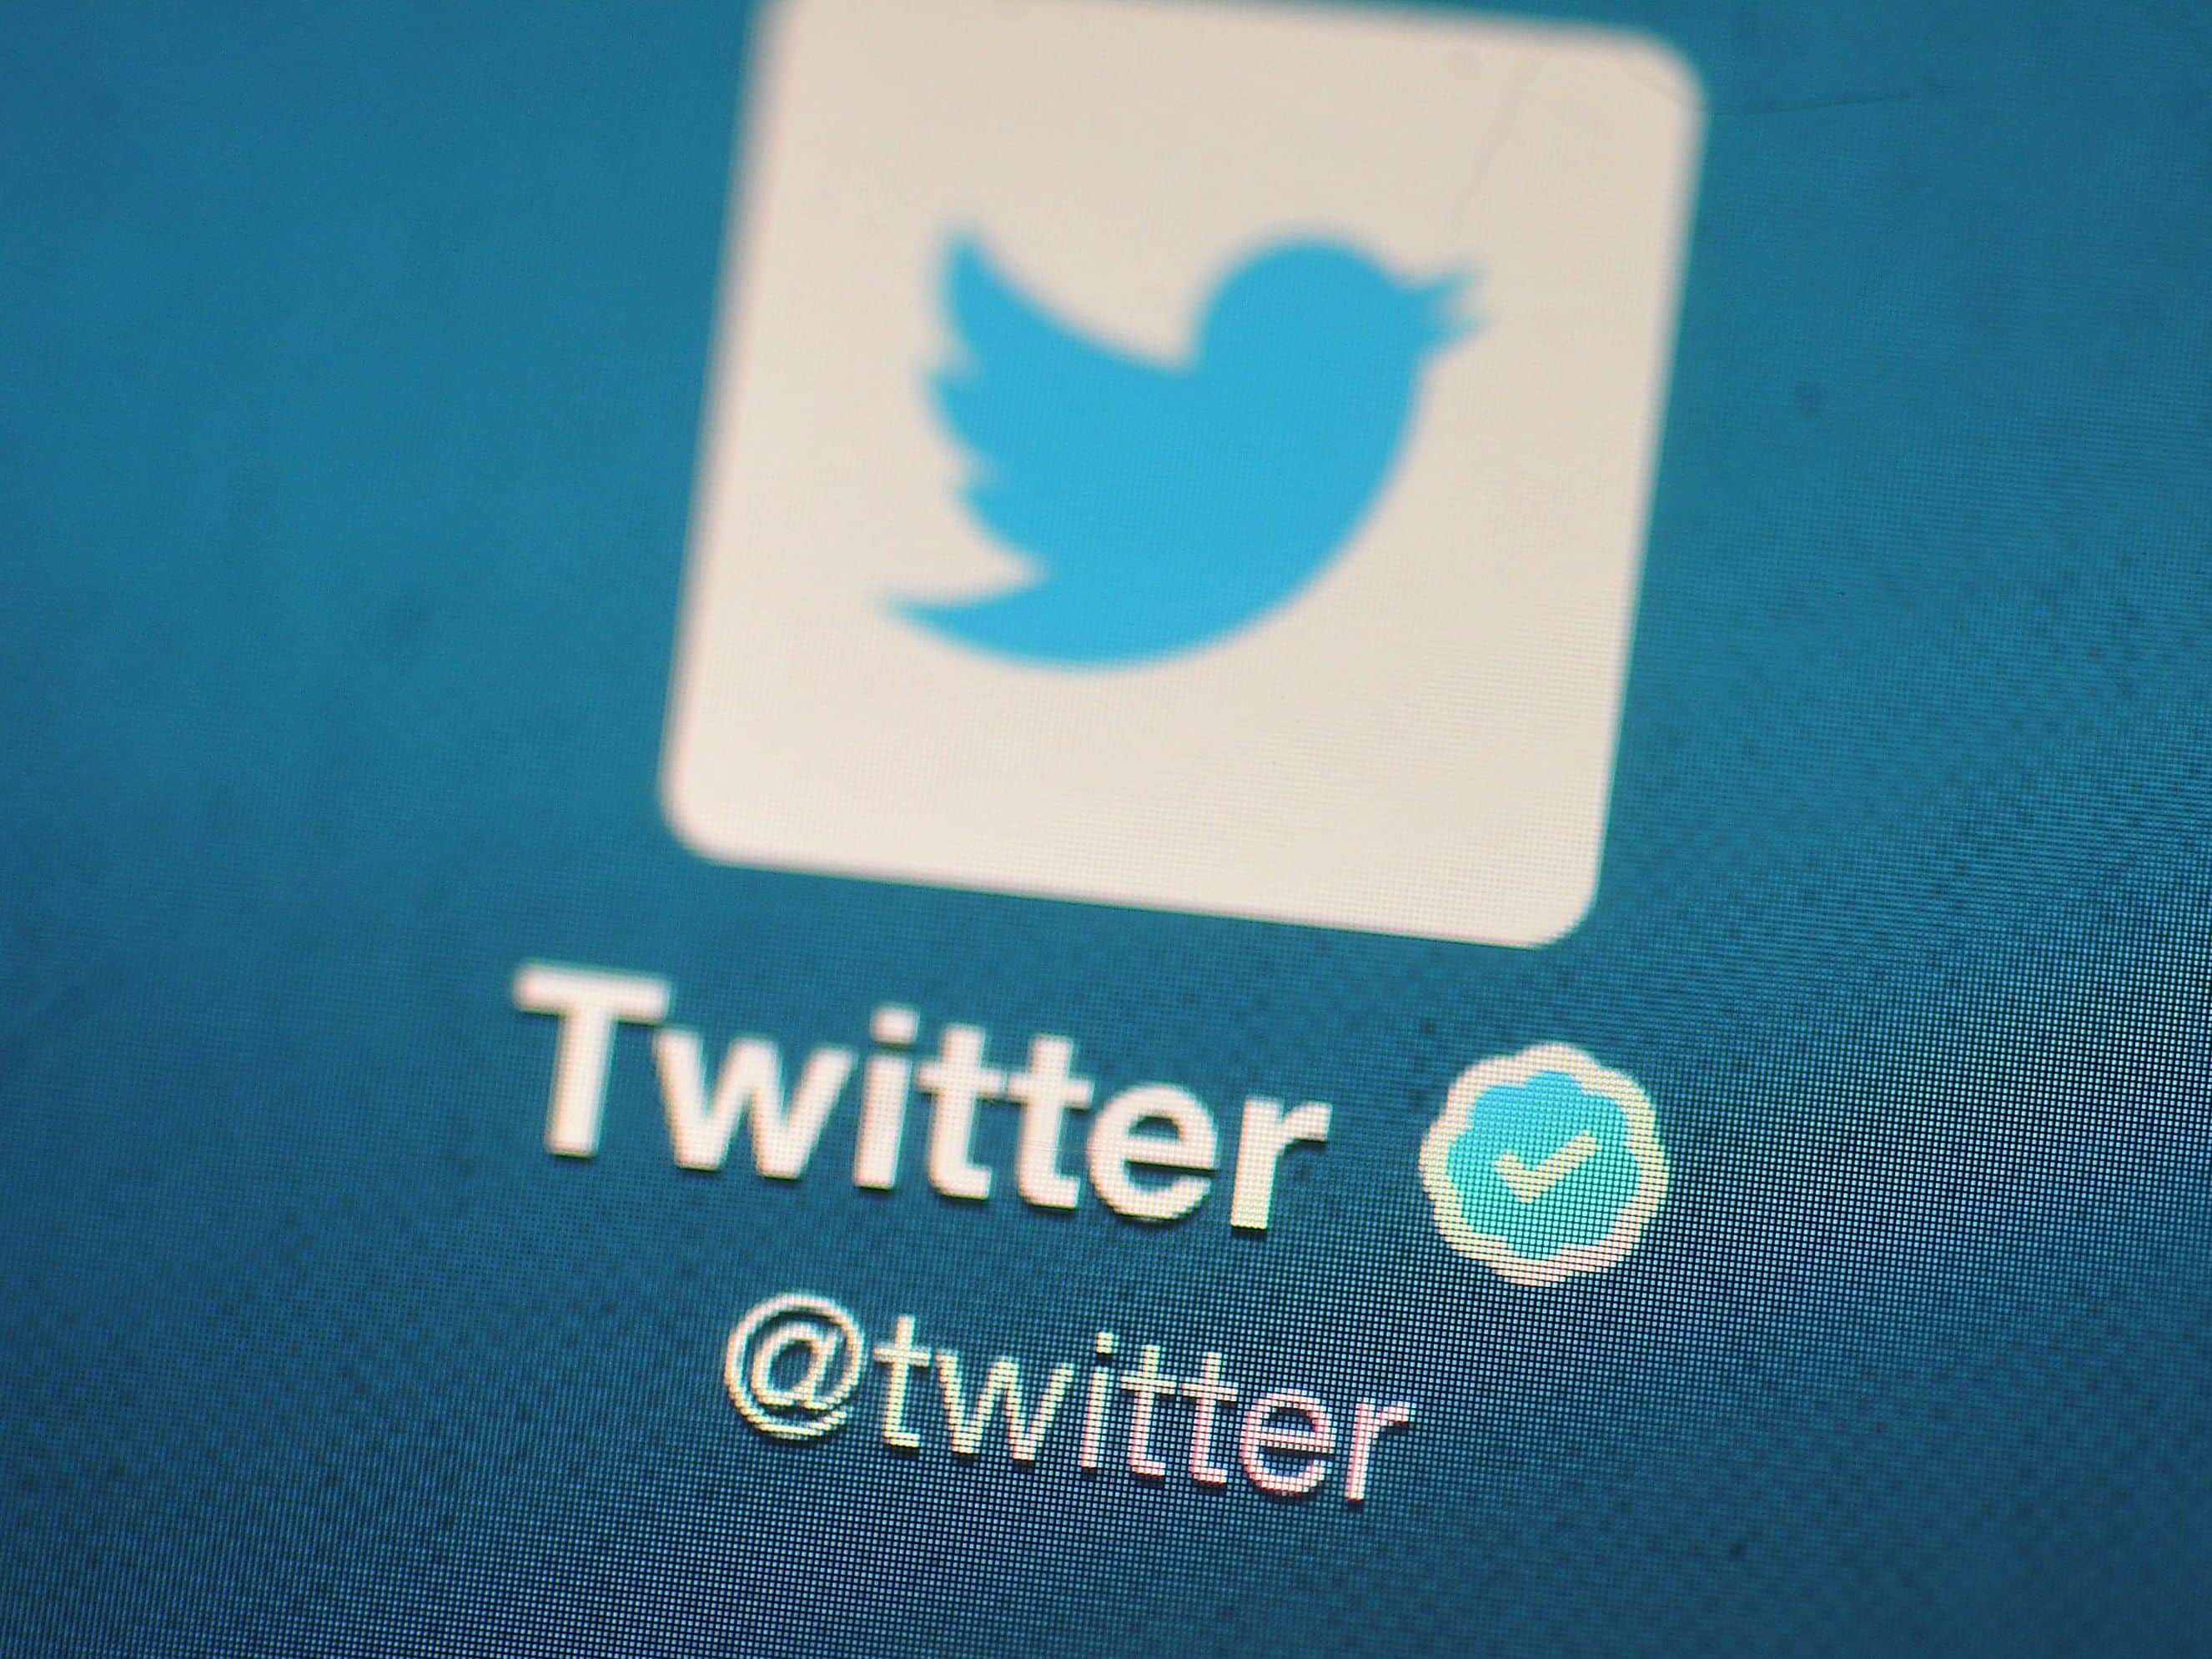 Parliamentary Panel rebukes Twitter: Law of land is supreme, not company's policies